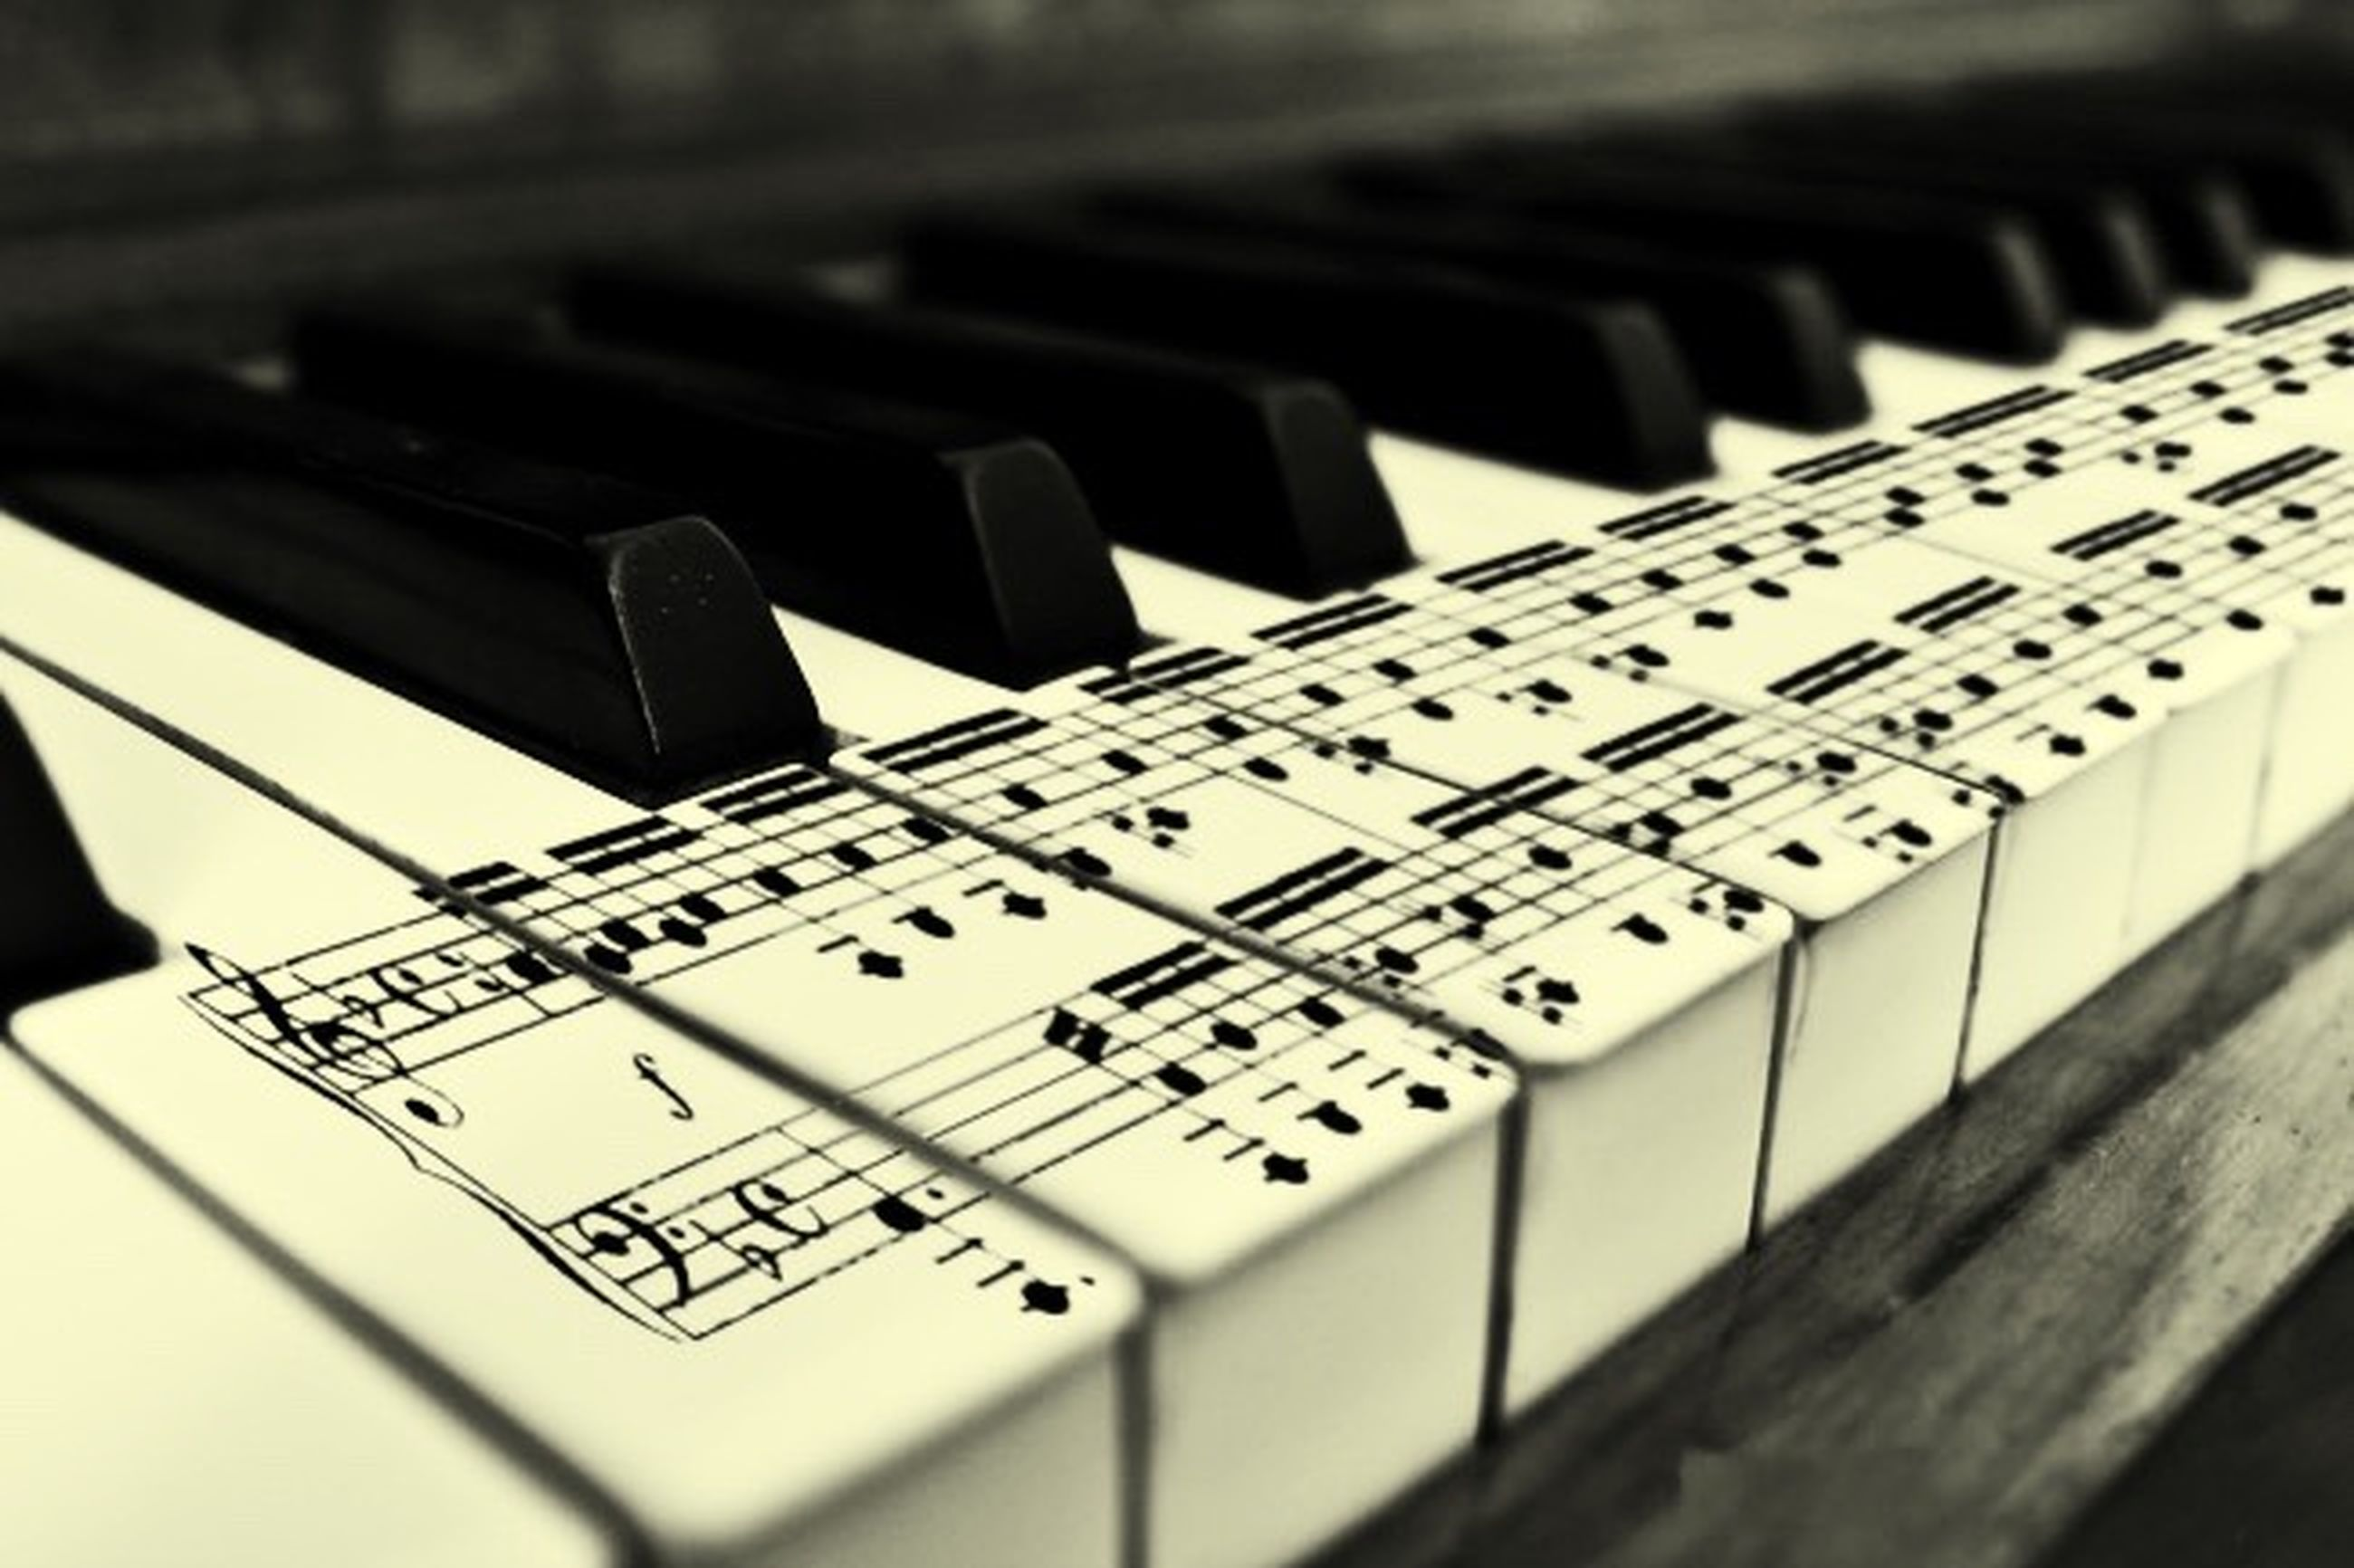 indoors, communication, text, close-up, western script, selective focus, music, technology, number, in a row, arts culture and entertainment, piano key, musical instrument, education, computer keyboard, connection, alphabet, still life, piano, repetition